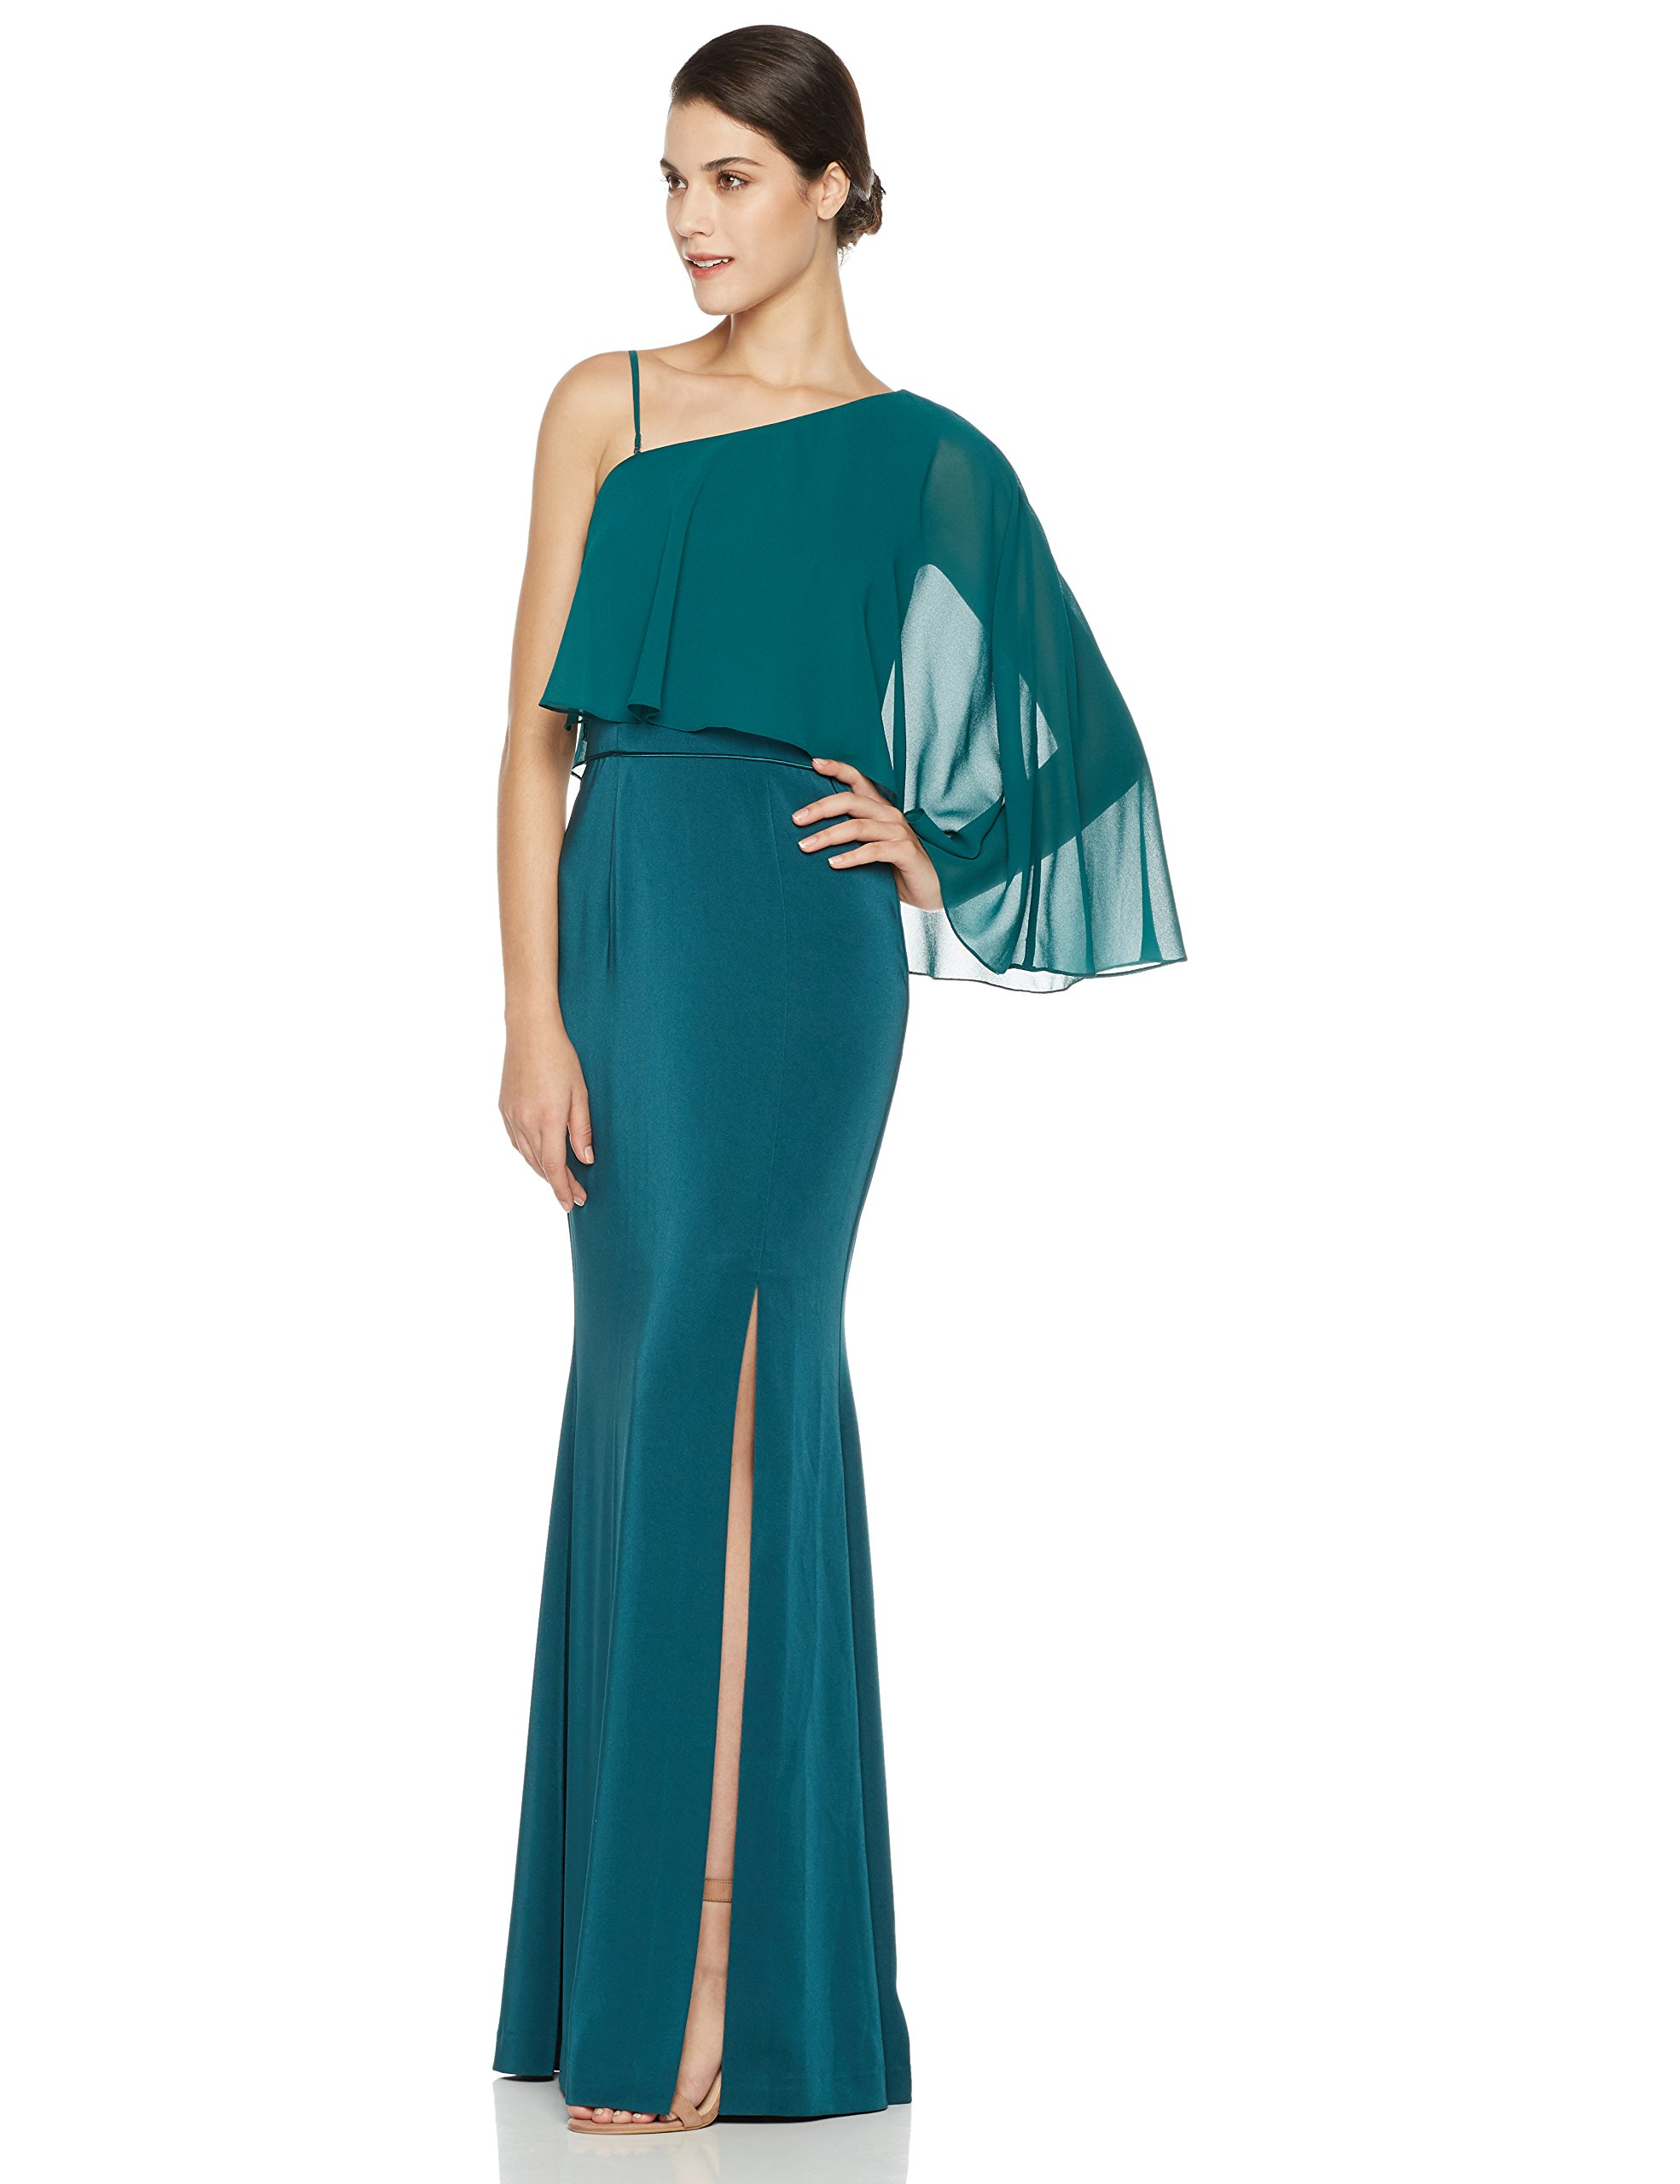 Social Graces Women's One Shoulder Sheer Popover Stretch Crepe Maxi Dress Evening Gown With Slit 4 Deep Teal Green